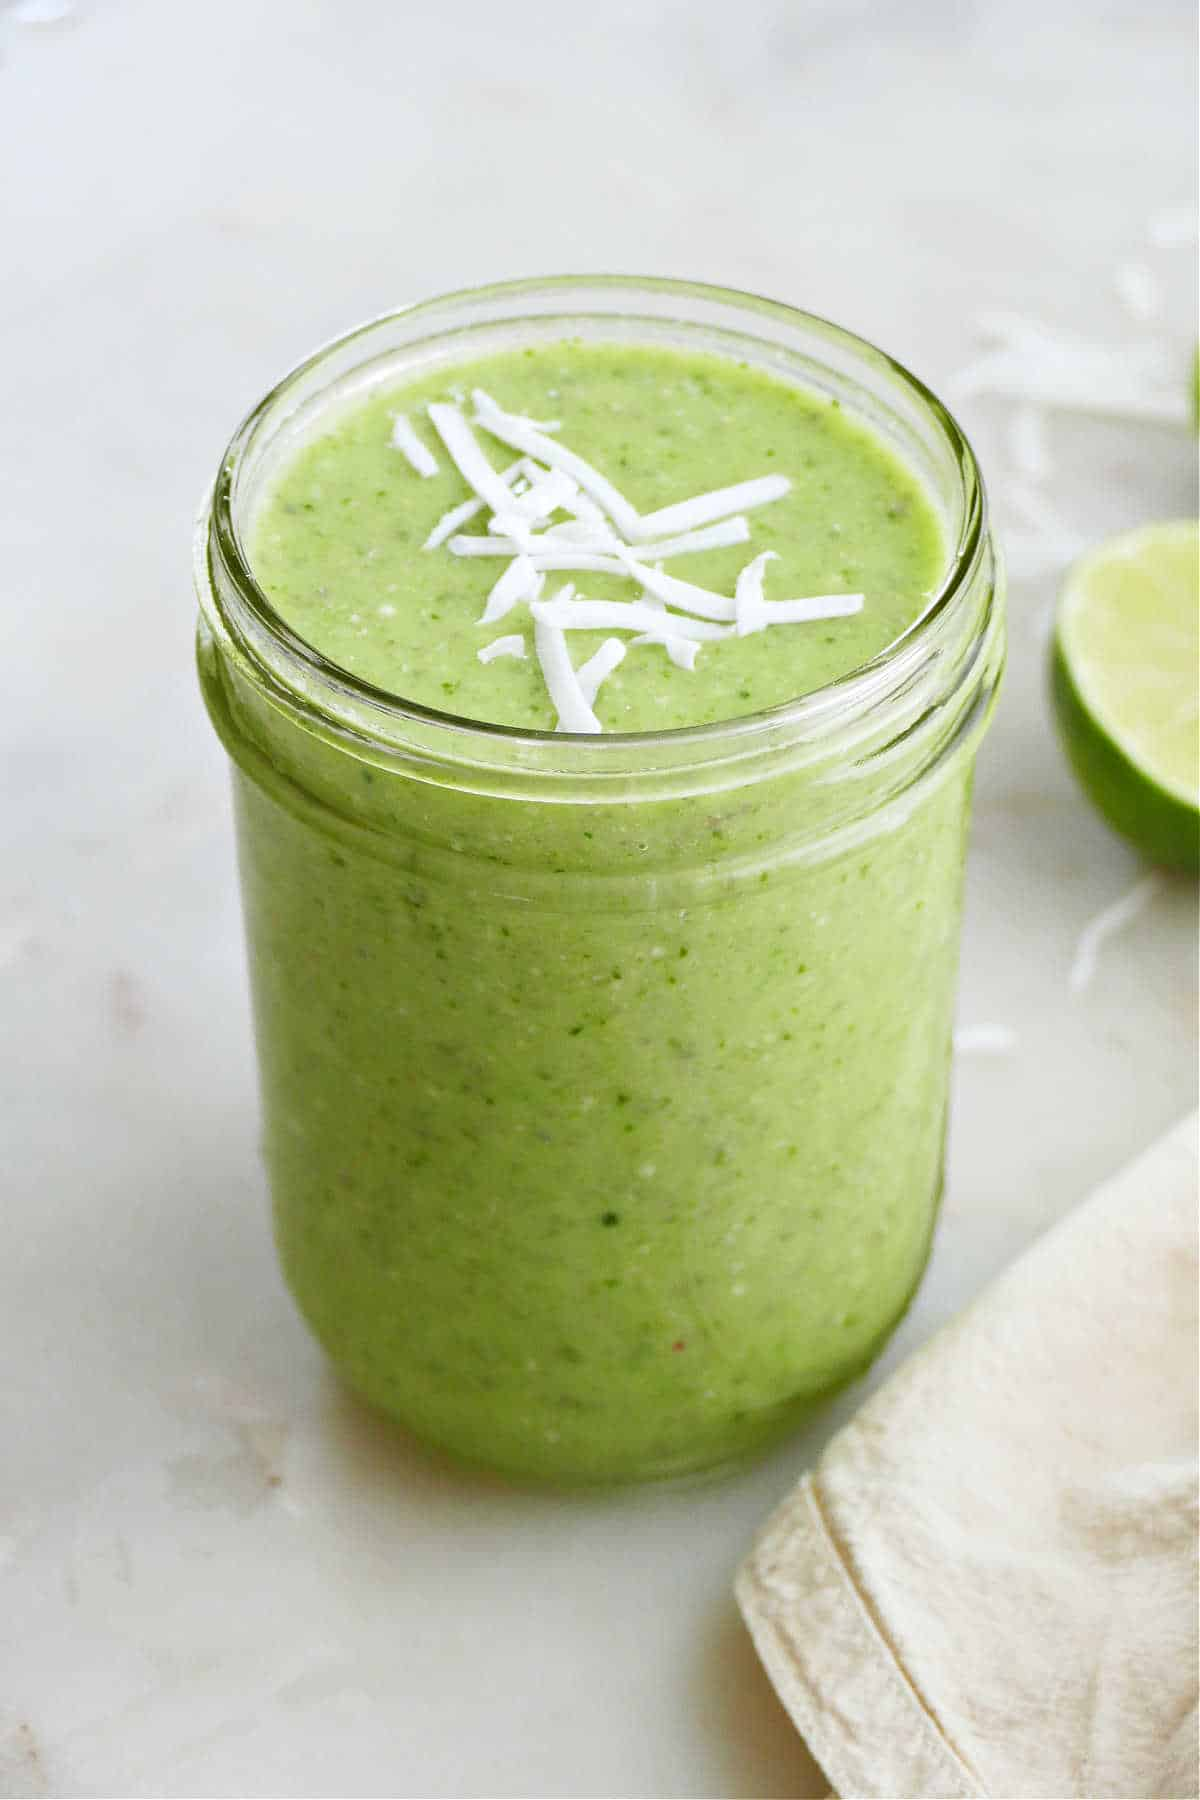 cucumber smoothie topped with shredded coconut flakes in a glass jar on a counter